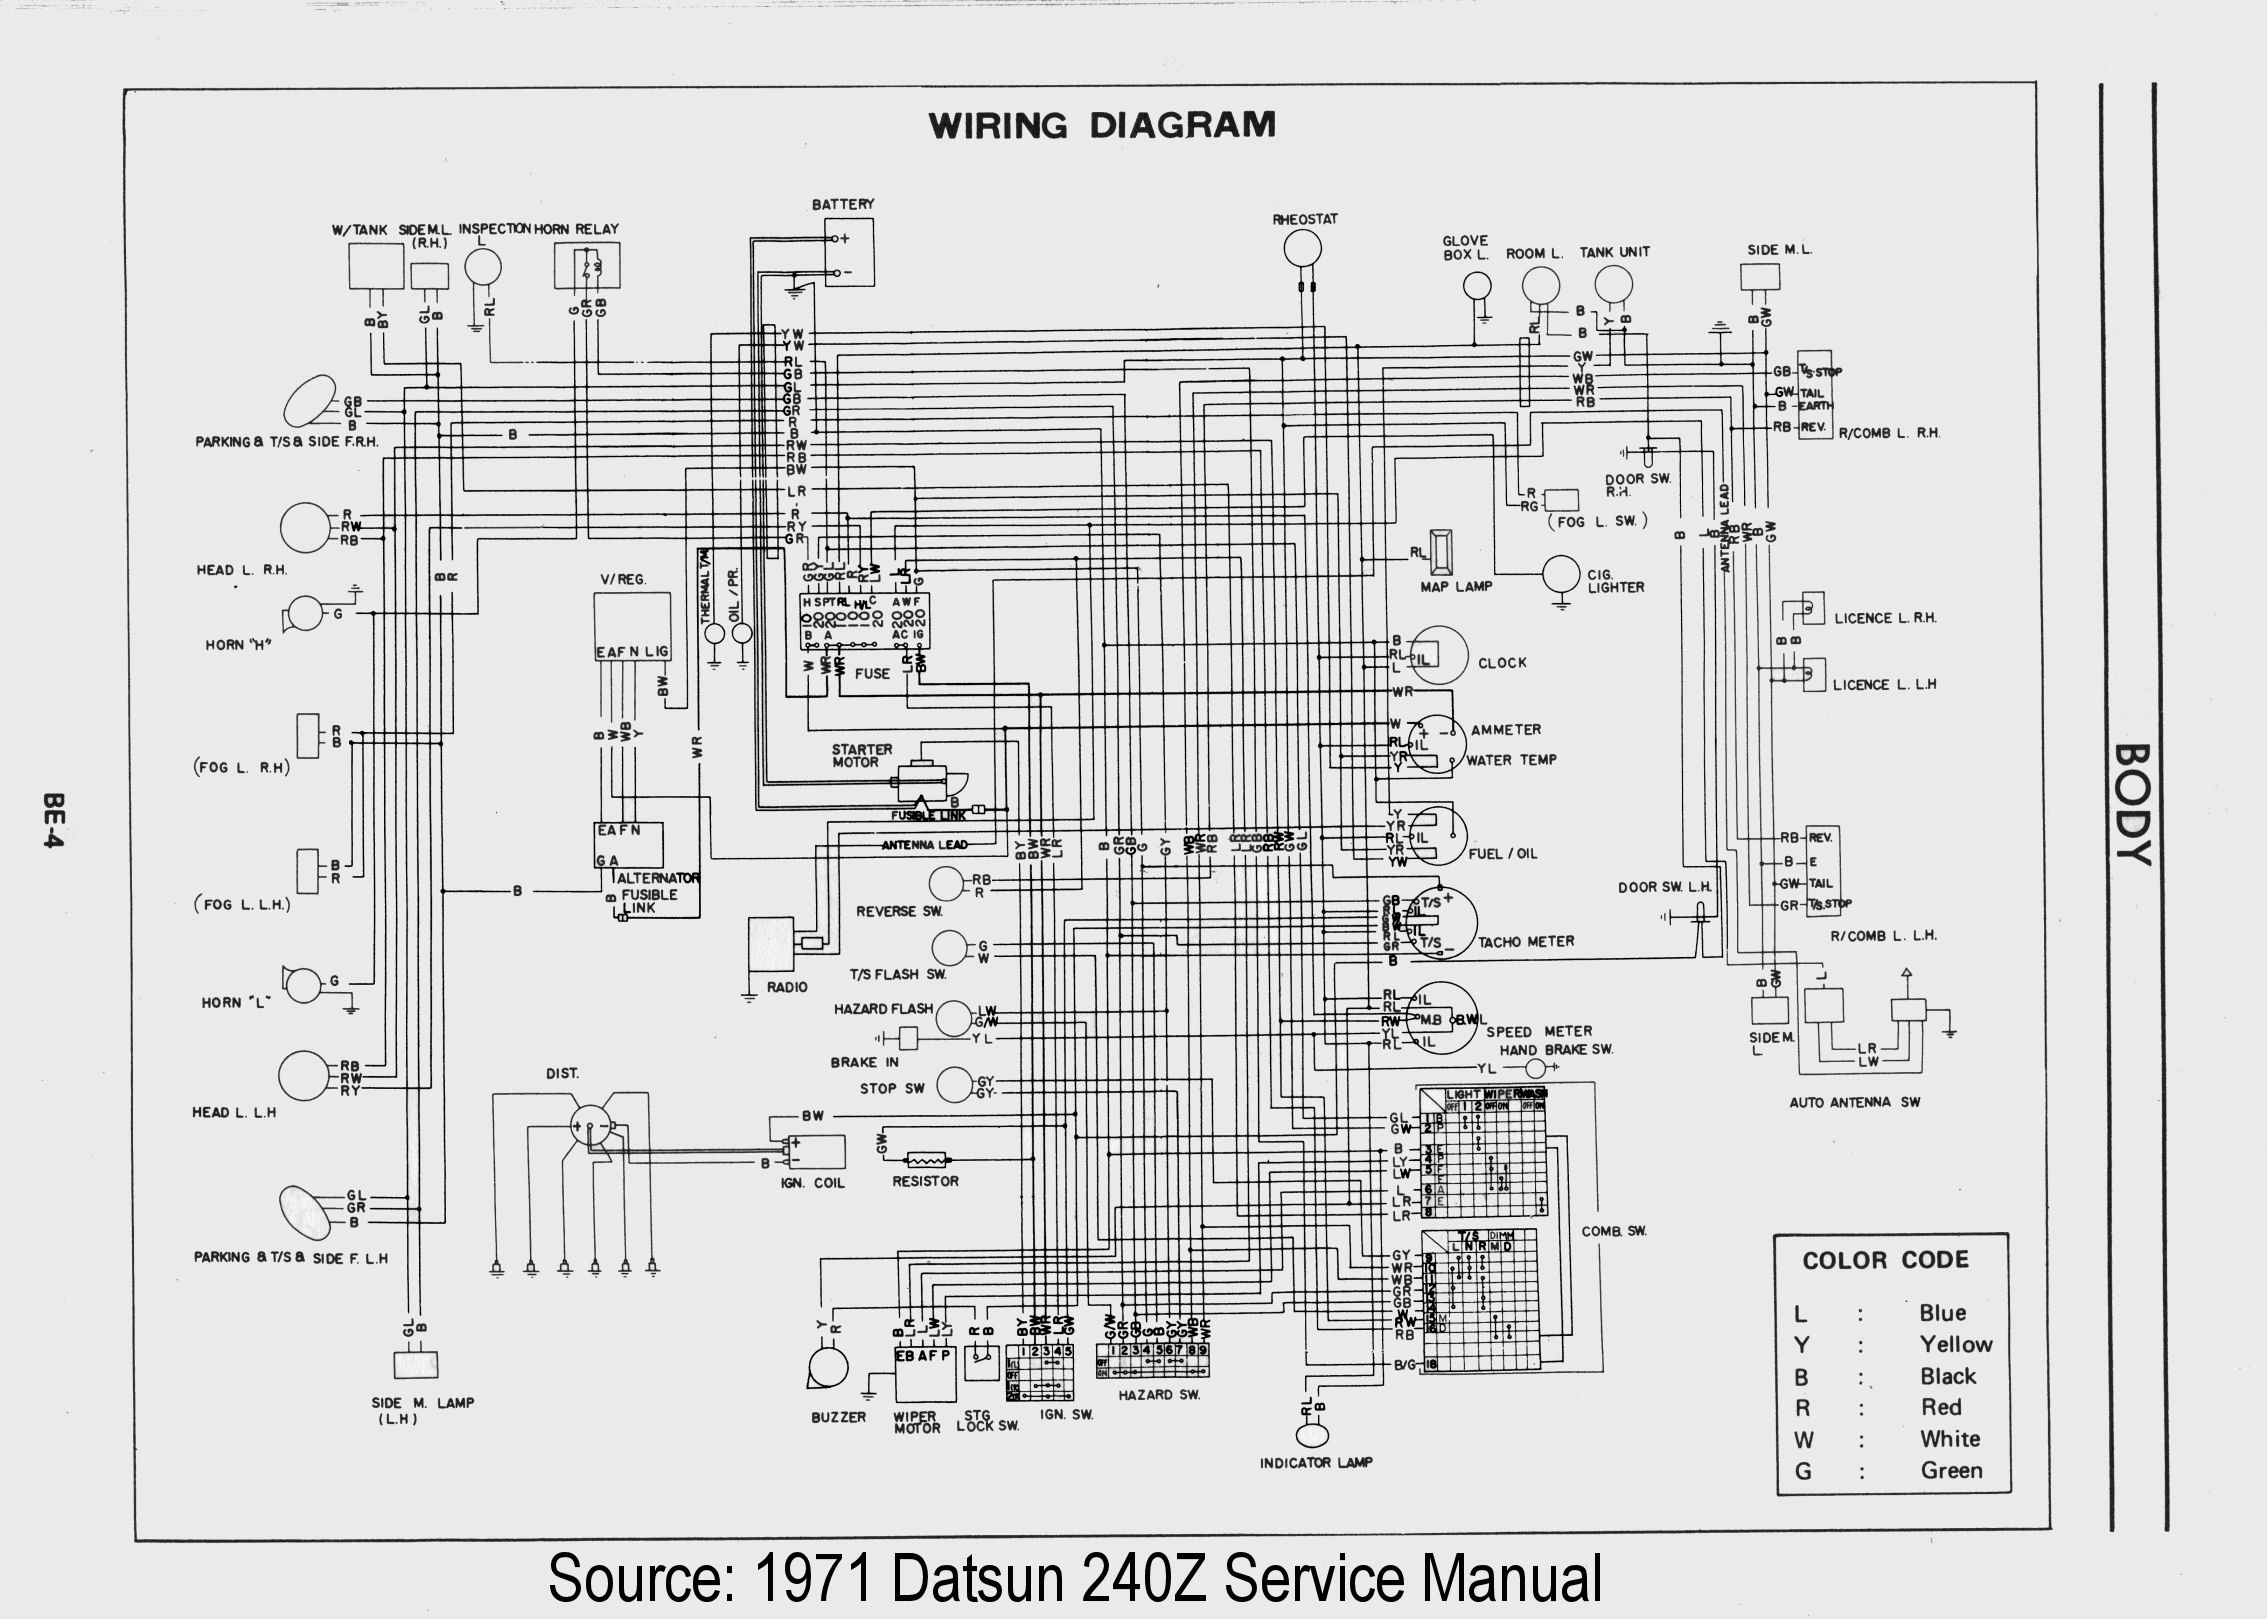 Wiring Diagram HiRes 2 280z wiring diagram 280z tachometer wiring \u2022 wiring diagrams j Ford Alternator Wiring Diagram at reclaimingppi.co